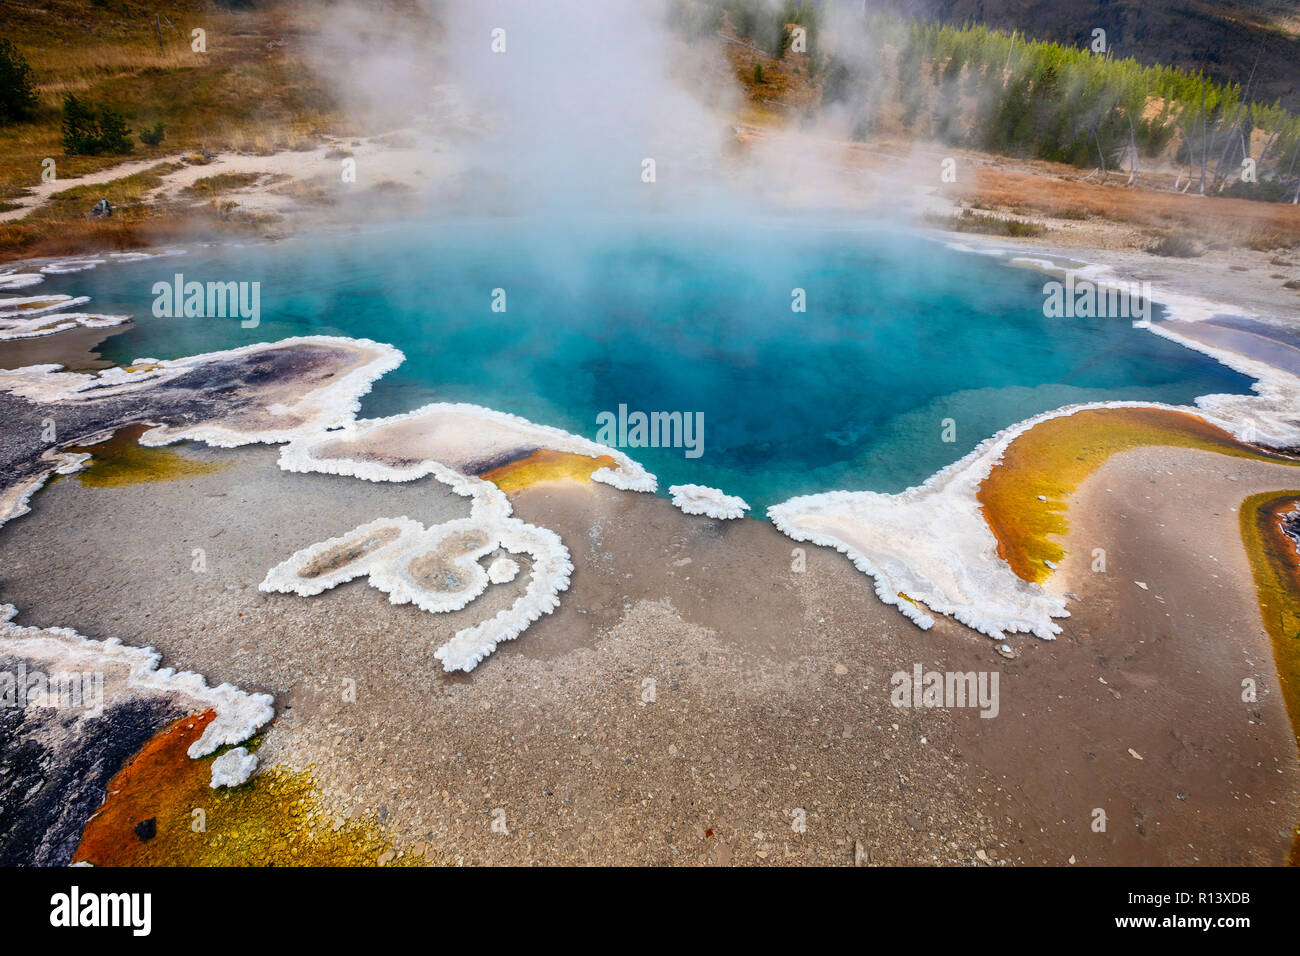 WY03581-00...WYOMING - Heart Lake Geyser Basin at the base of the Red Mountains in Yellowstone National Park. - Stock Image